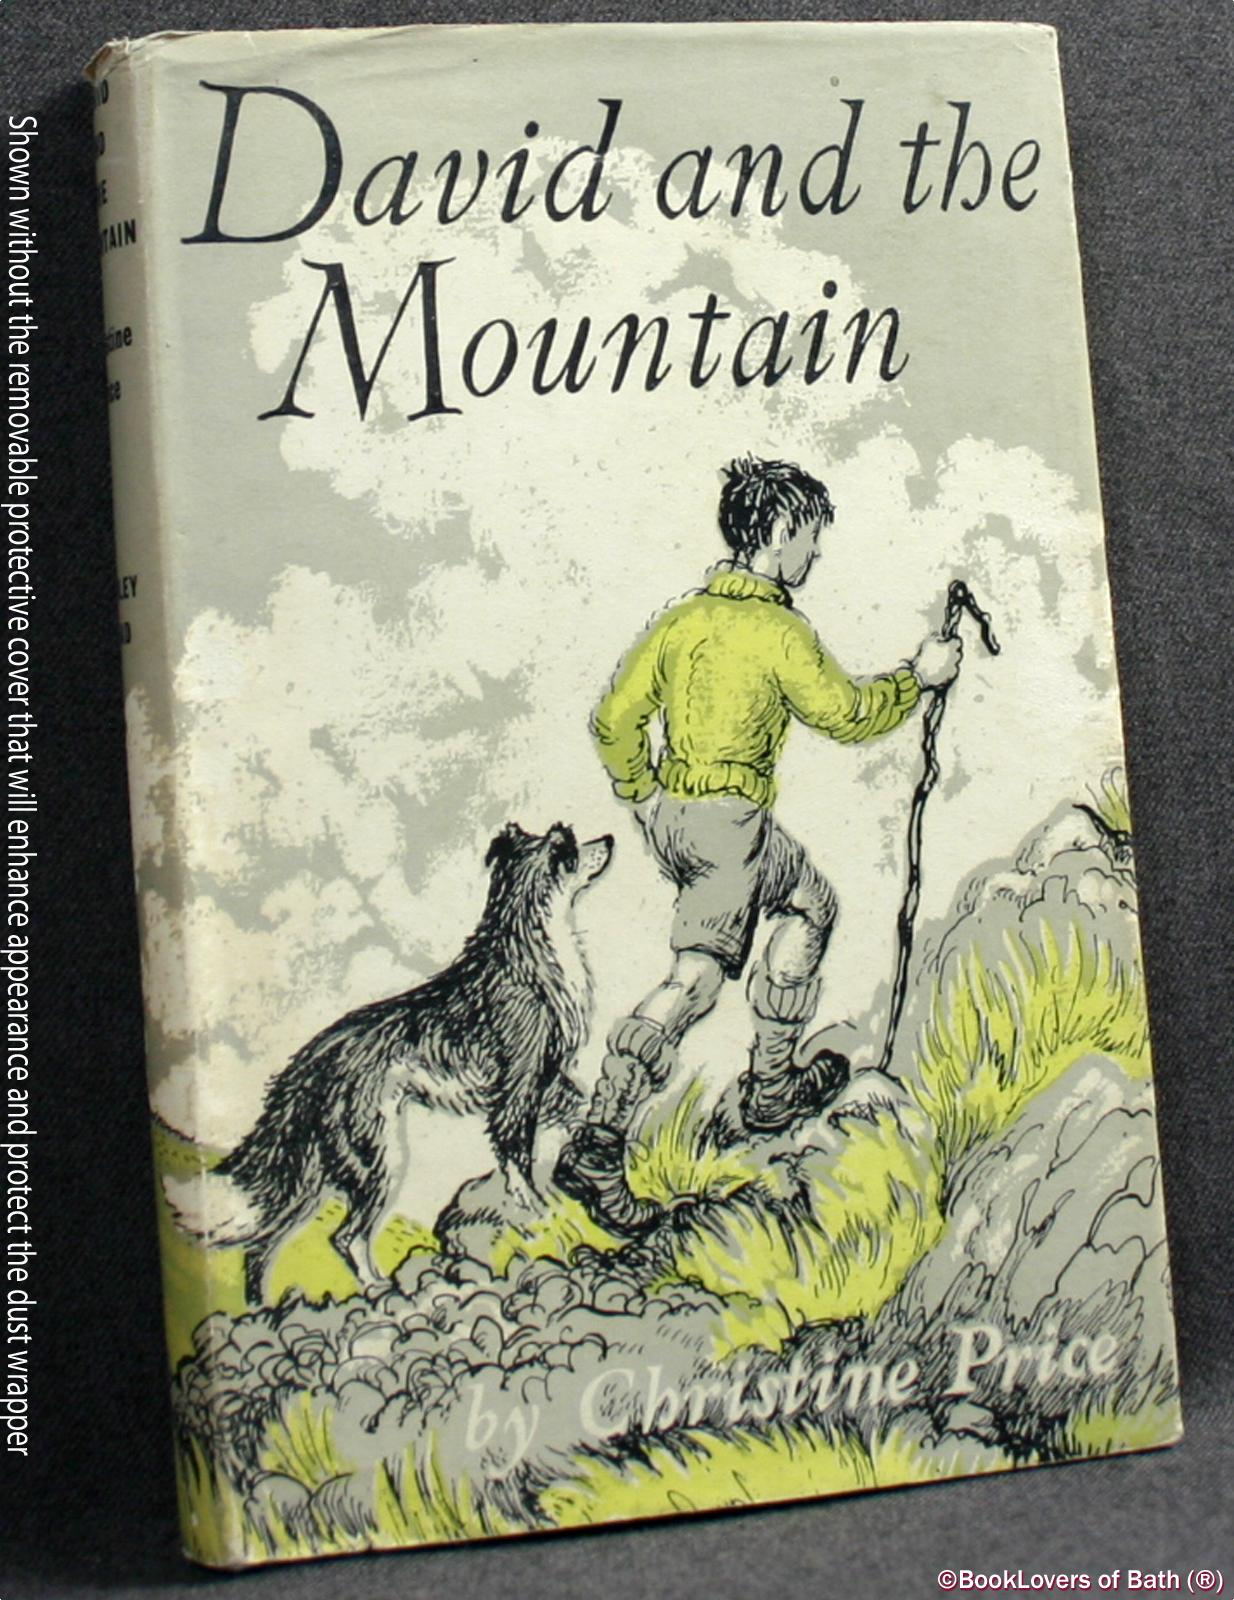 David and the Mountain - Christine Price